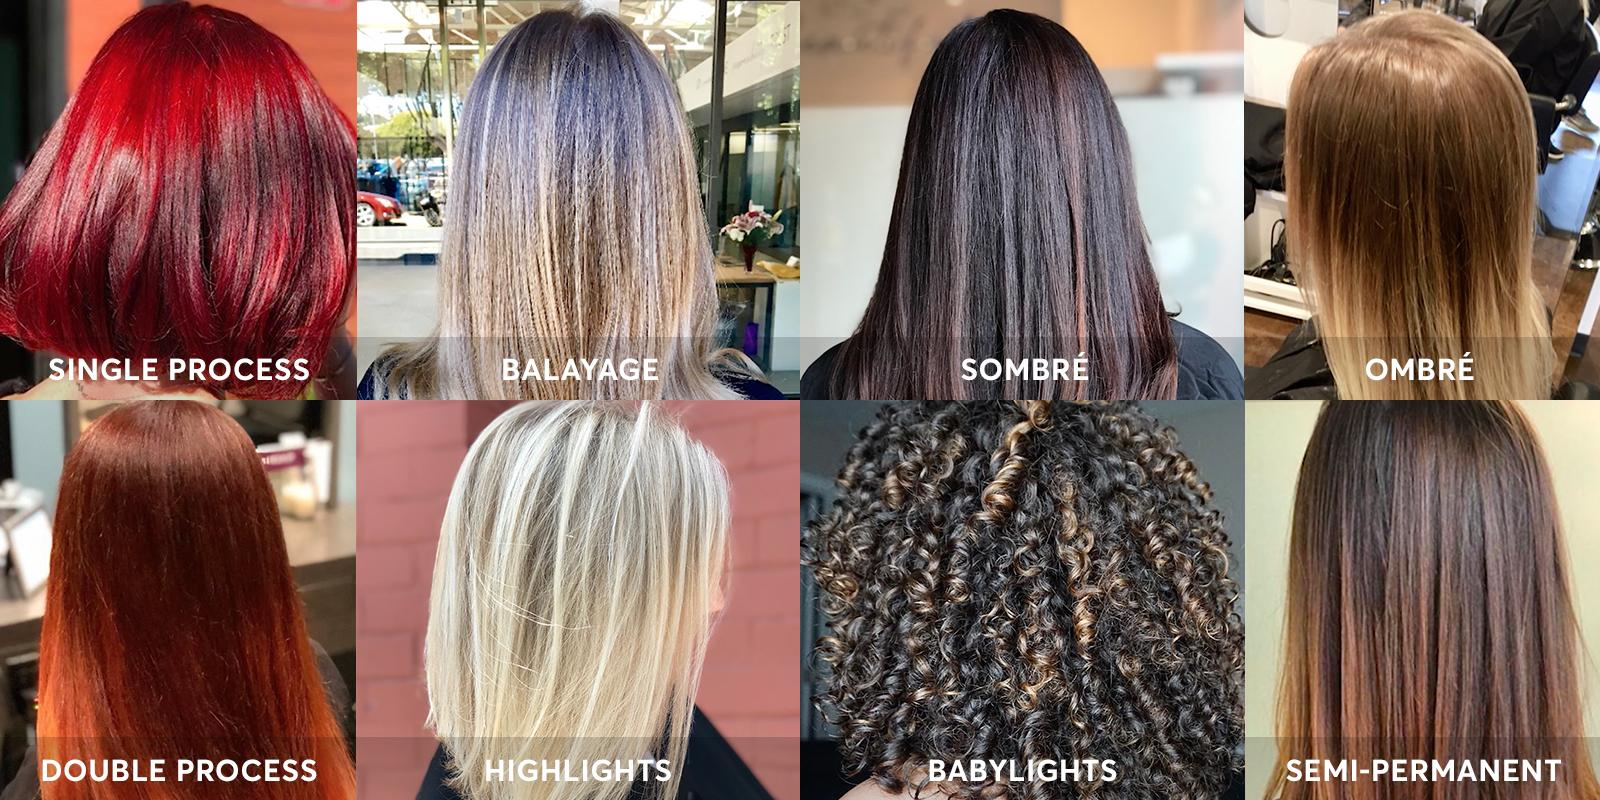 Balayage, Ombre, and Sombre - Oh My!